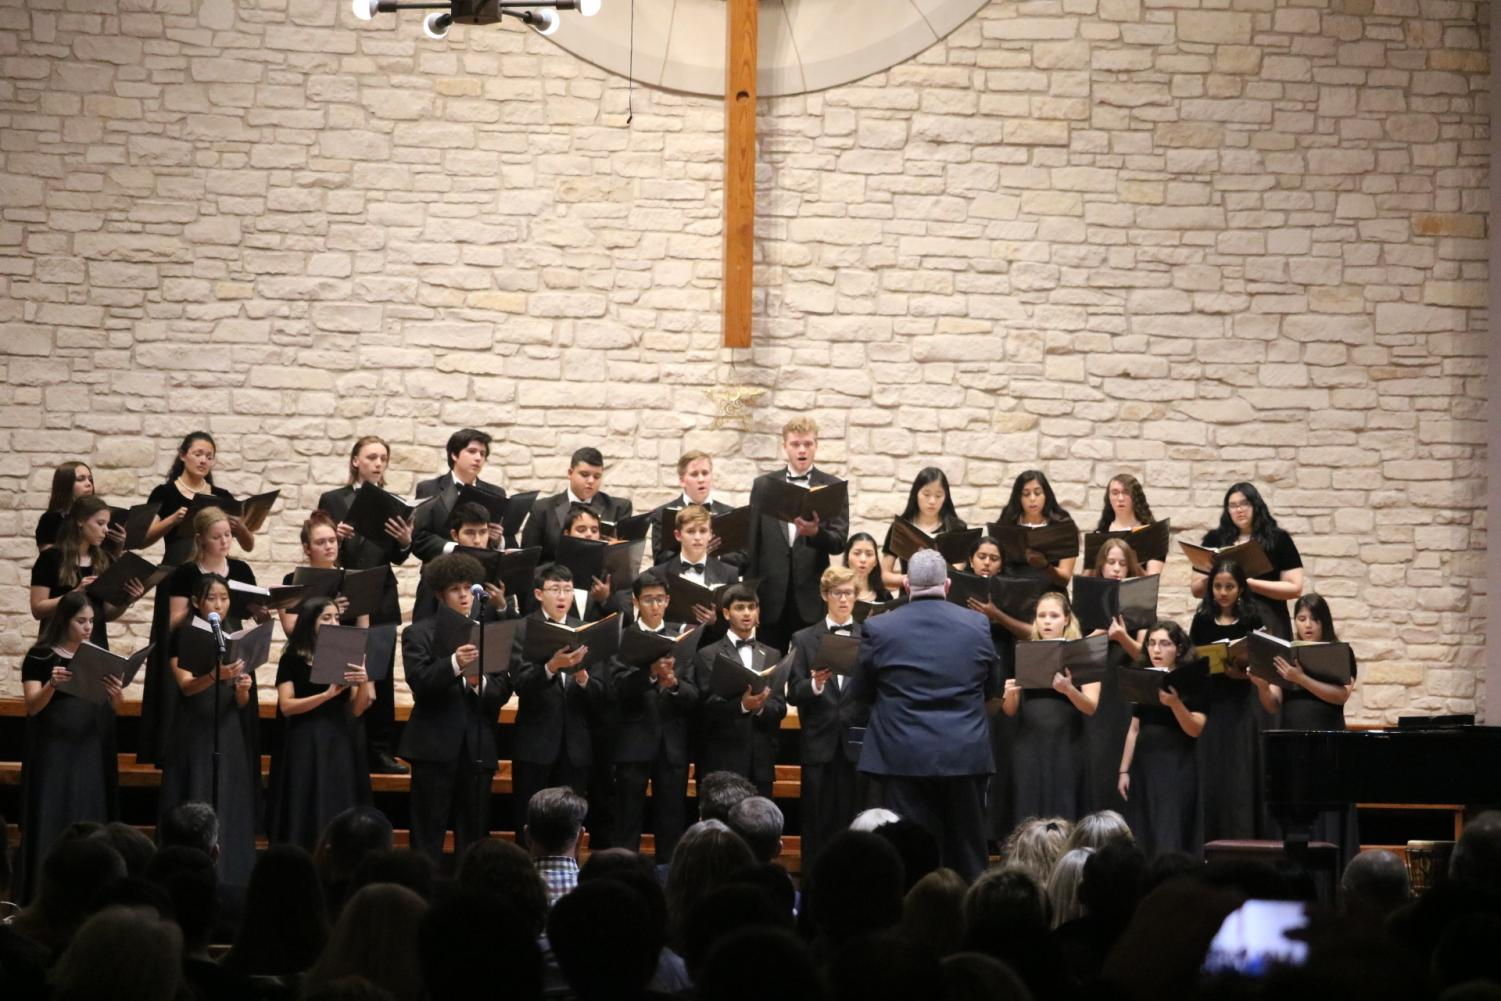 Westwood%27s+Chorale+choir+sings+%27Brightest+and+Best%27+and+%27Blow%2C+Blow+Thou+Winter+Wind%27.